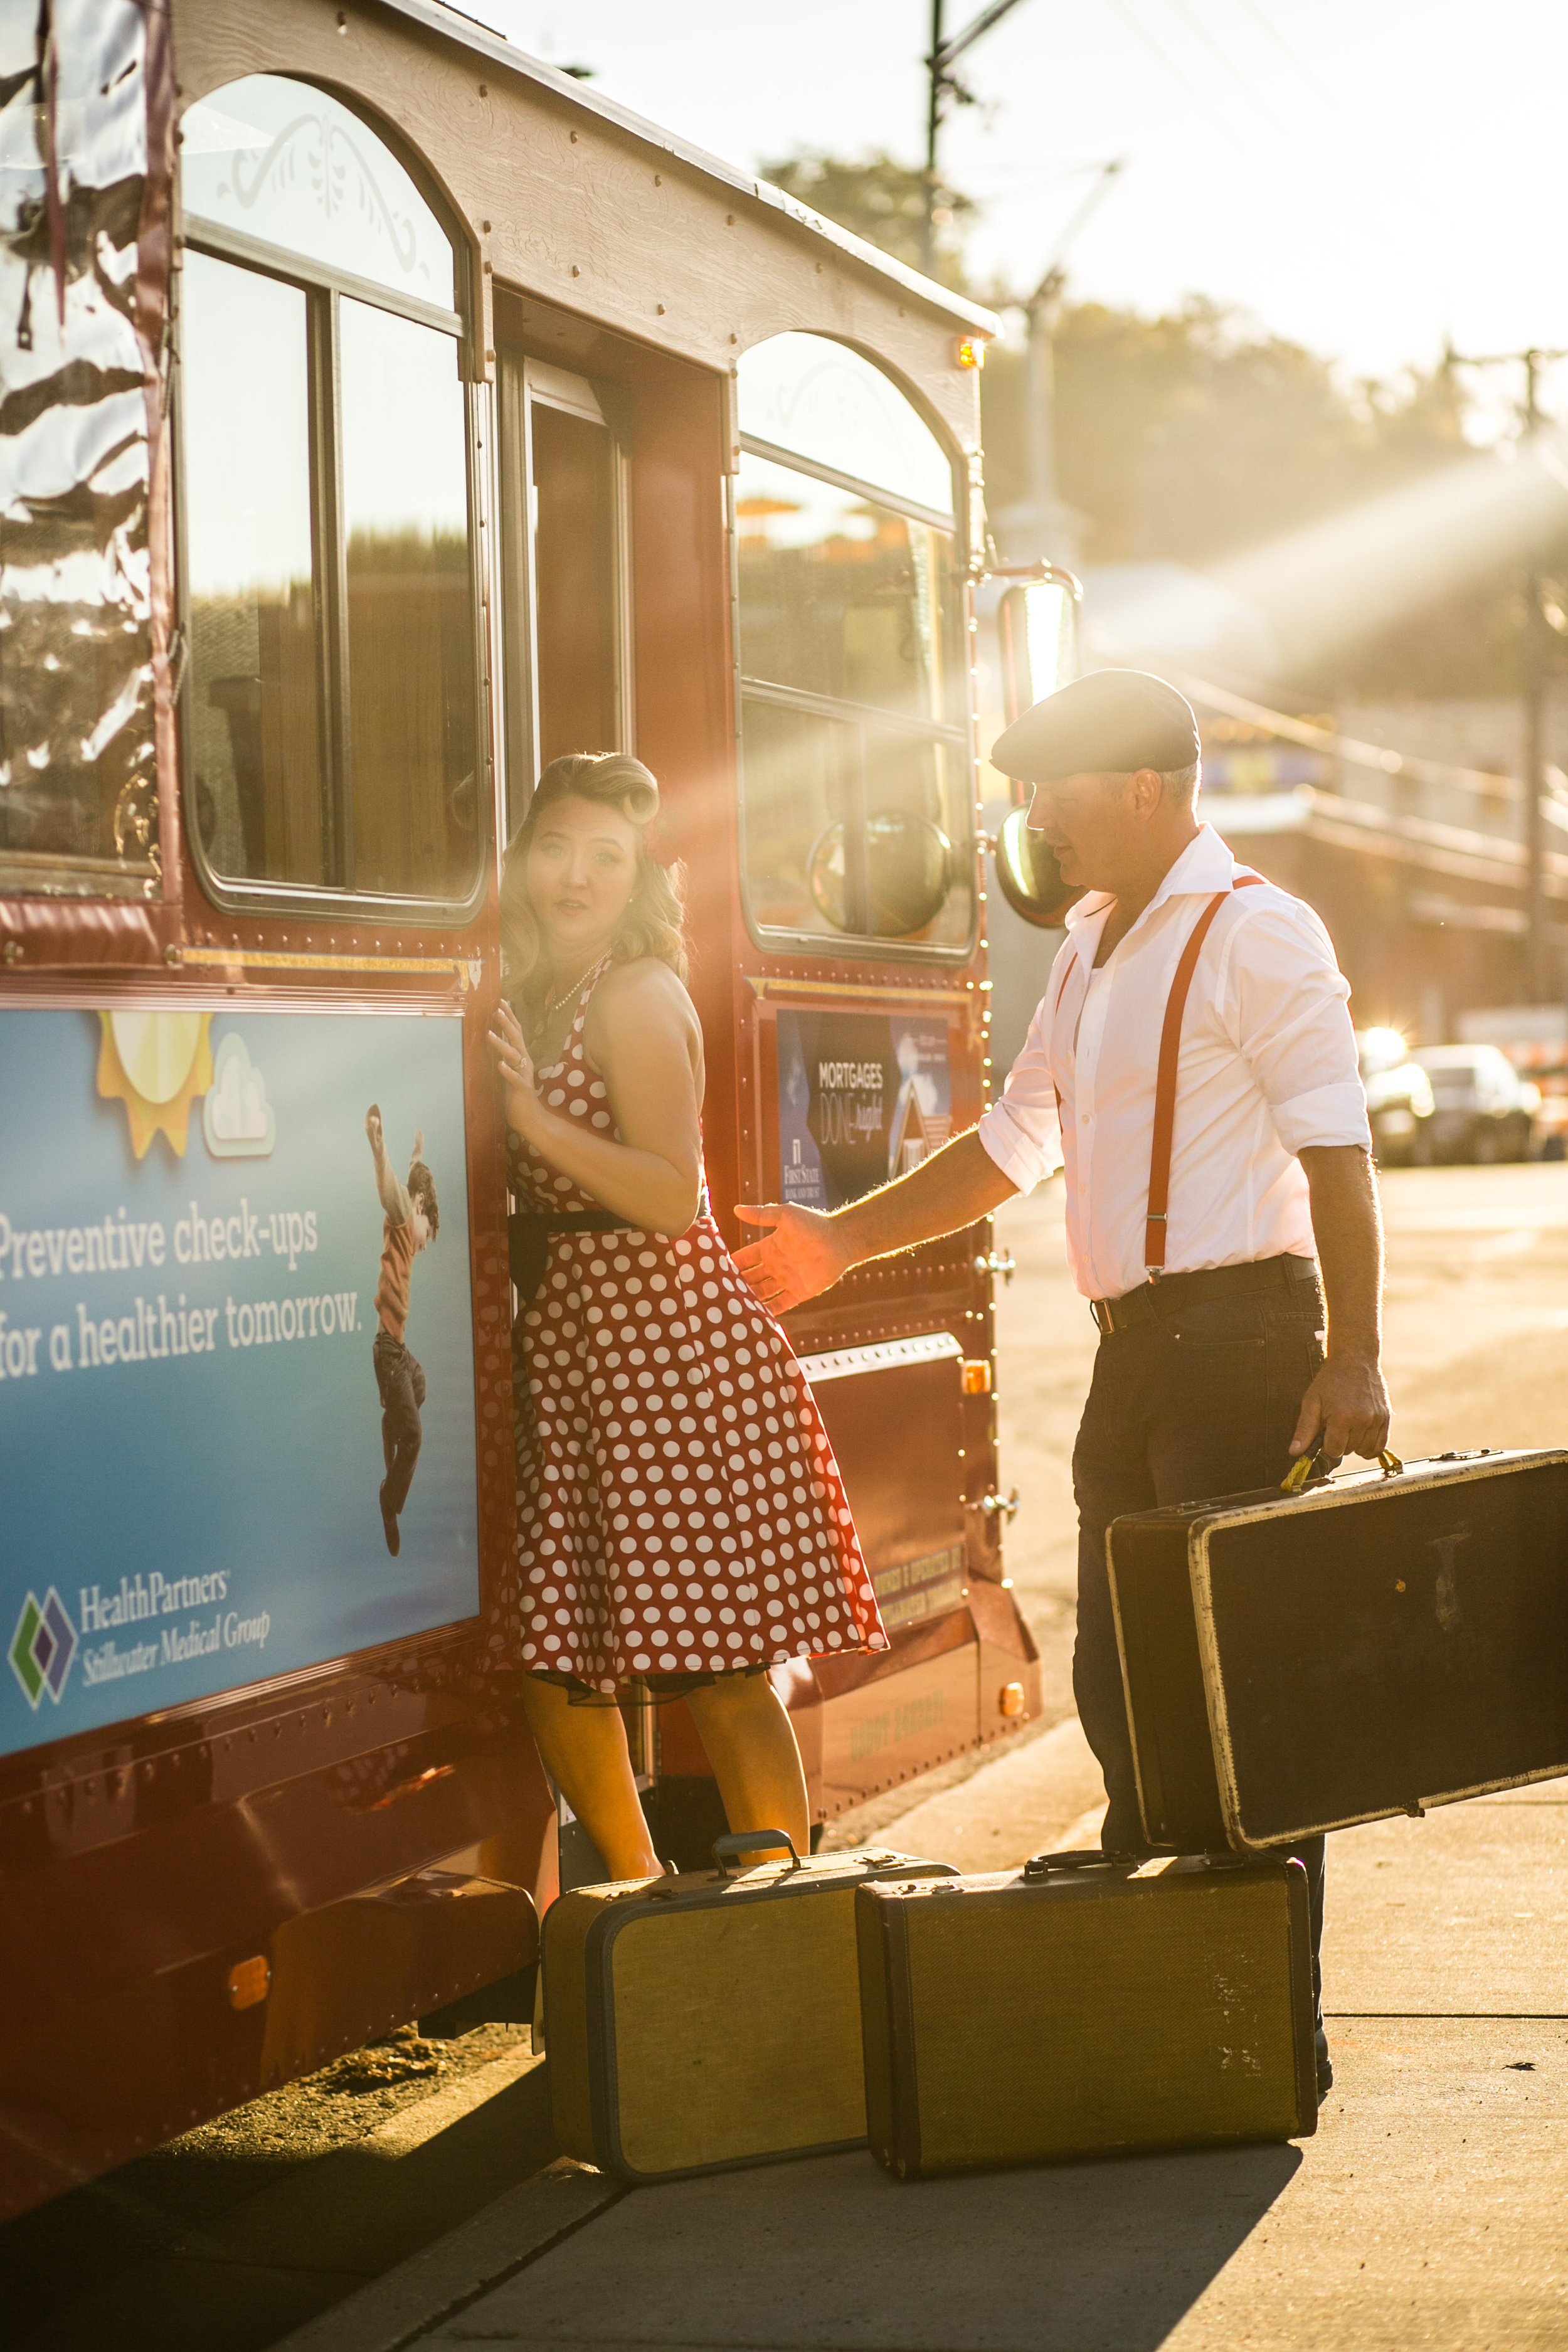 Vintage 1940's looking couple poses in front of Stillwater Trolley in the sunset causing flares